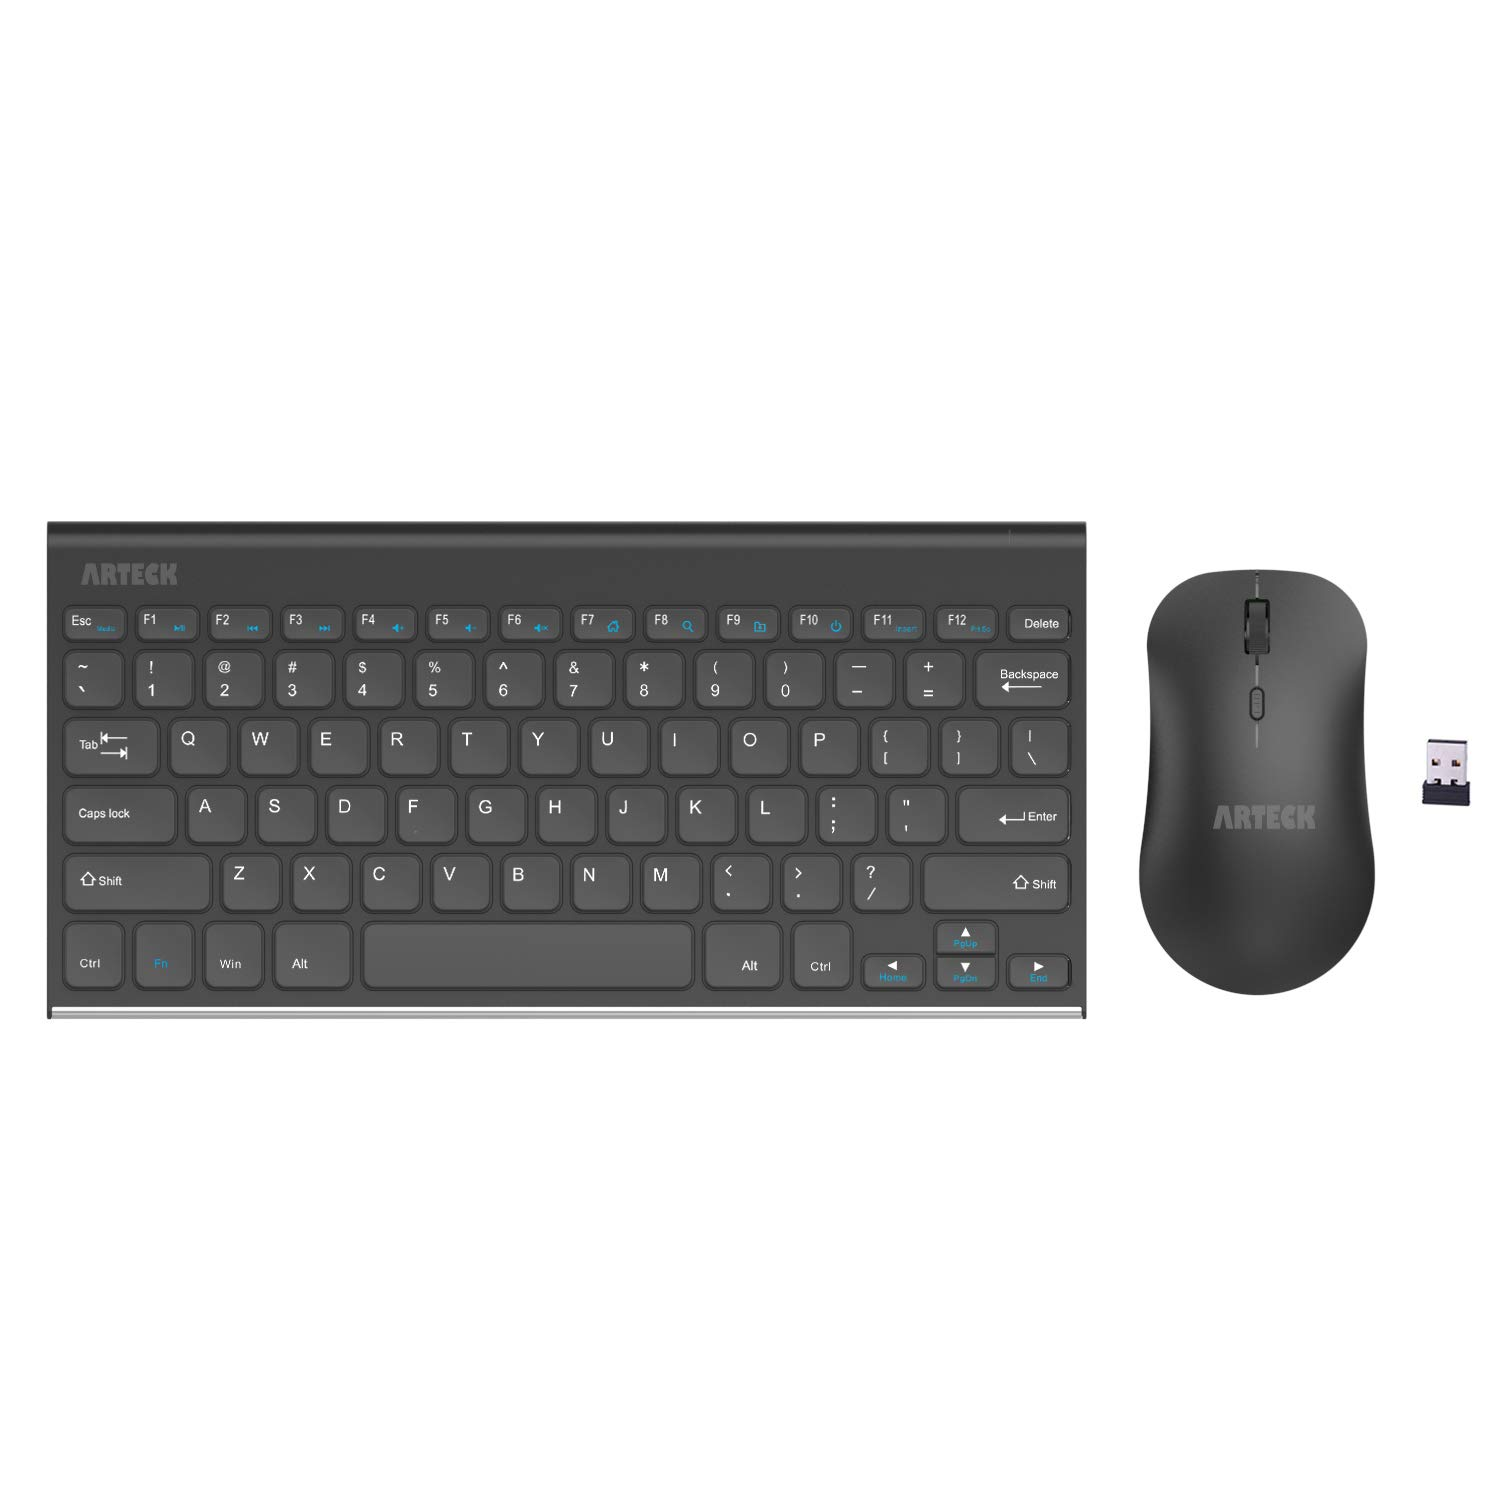 1c7e772bdec Arteck 2.4G Wireless Keyboard and Mice Combo Ultra Compact Slim Stainless  Full Size Keyboard and Ergonomic Mouse for Computer/Desktop/PC/Laptop and  Windows ...